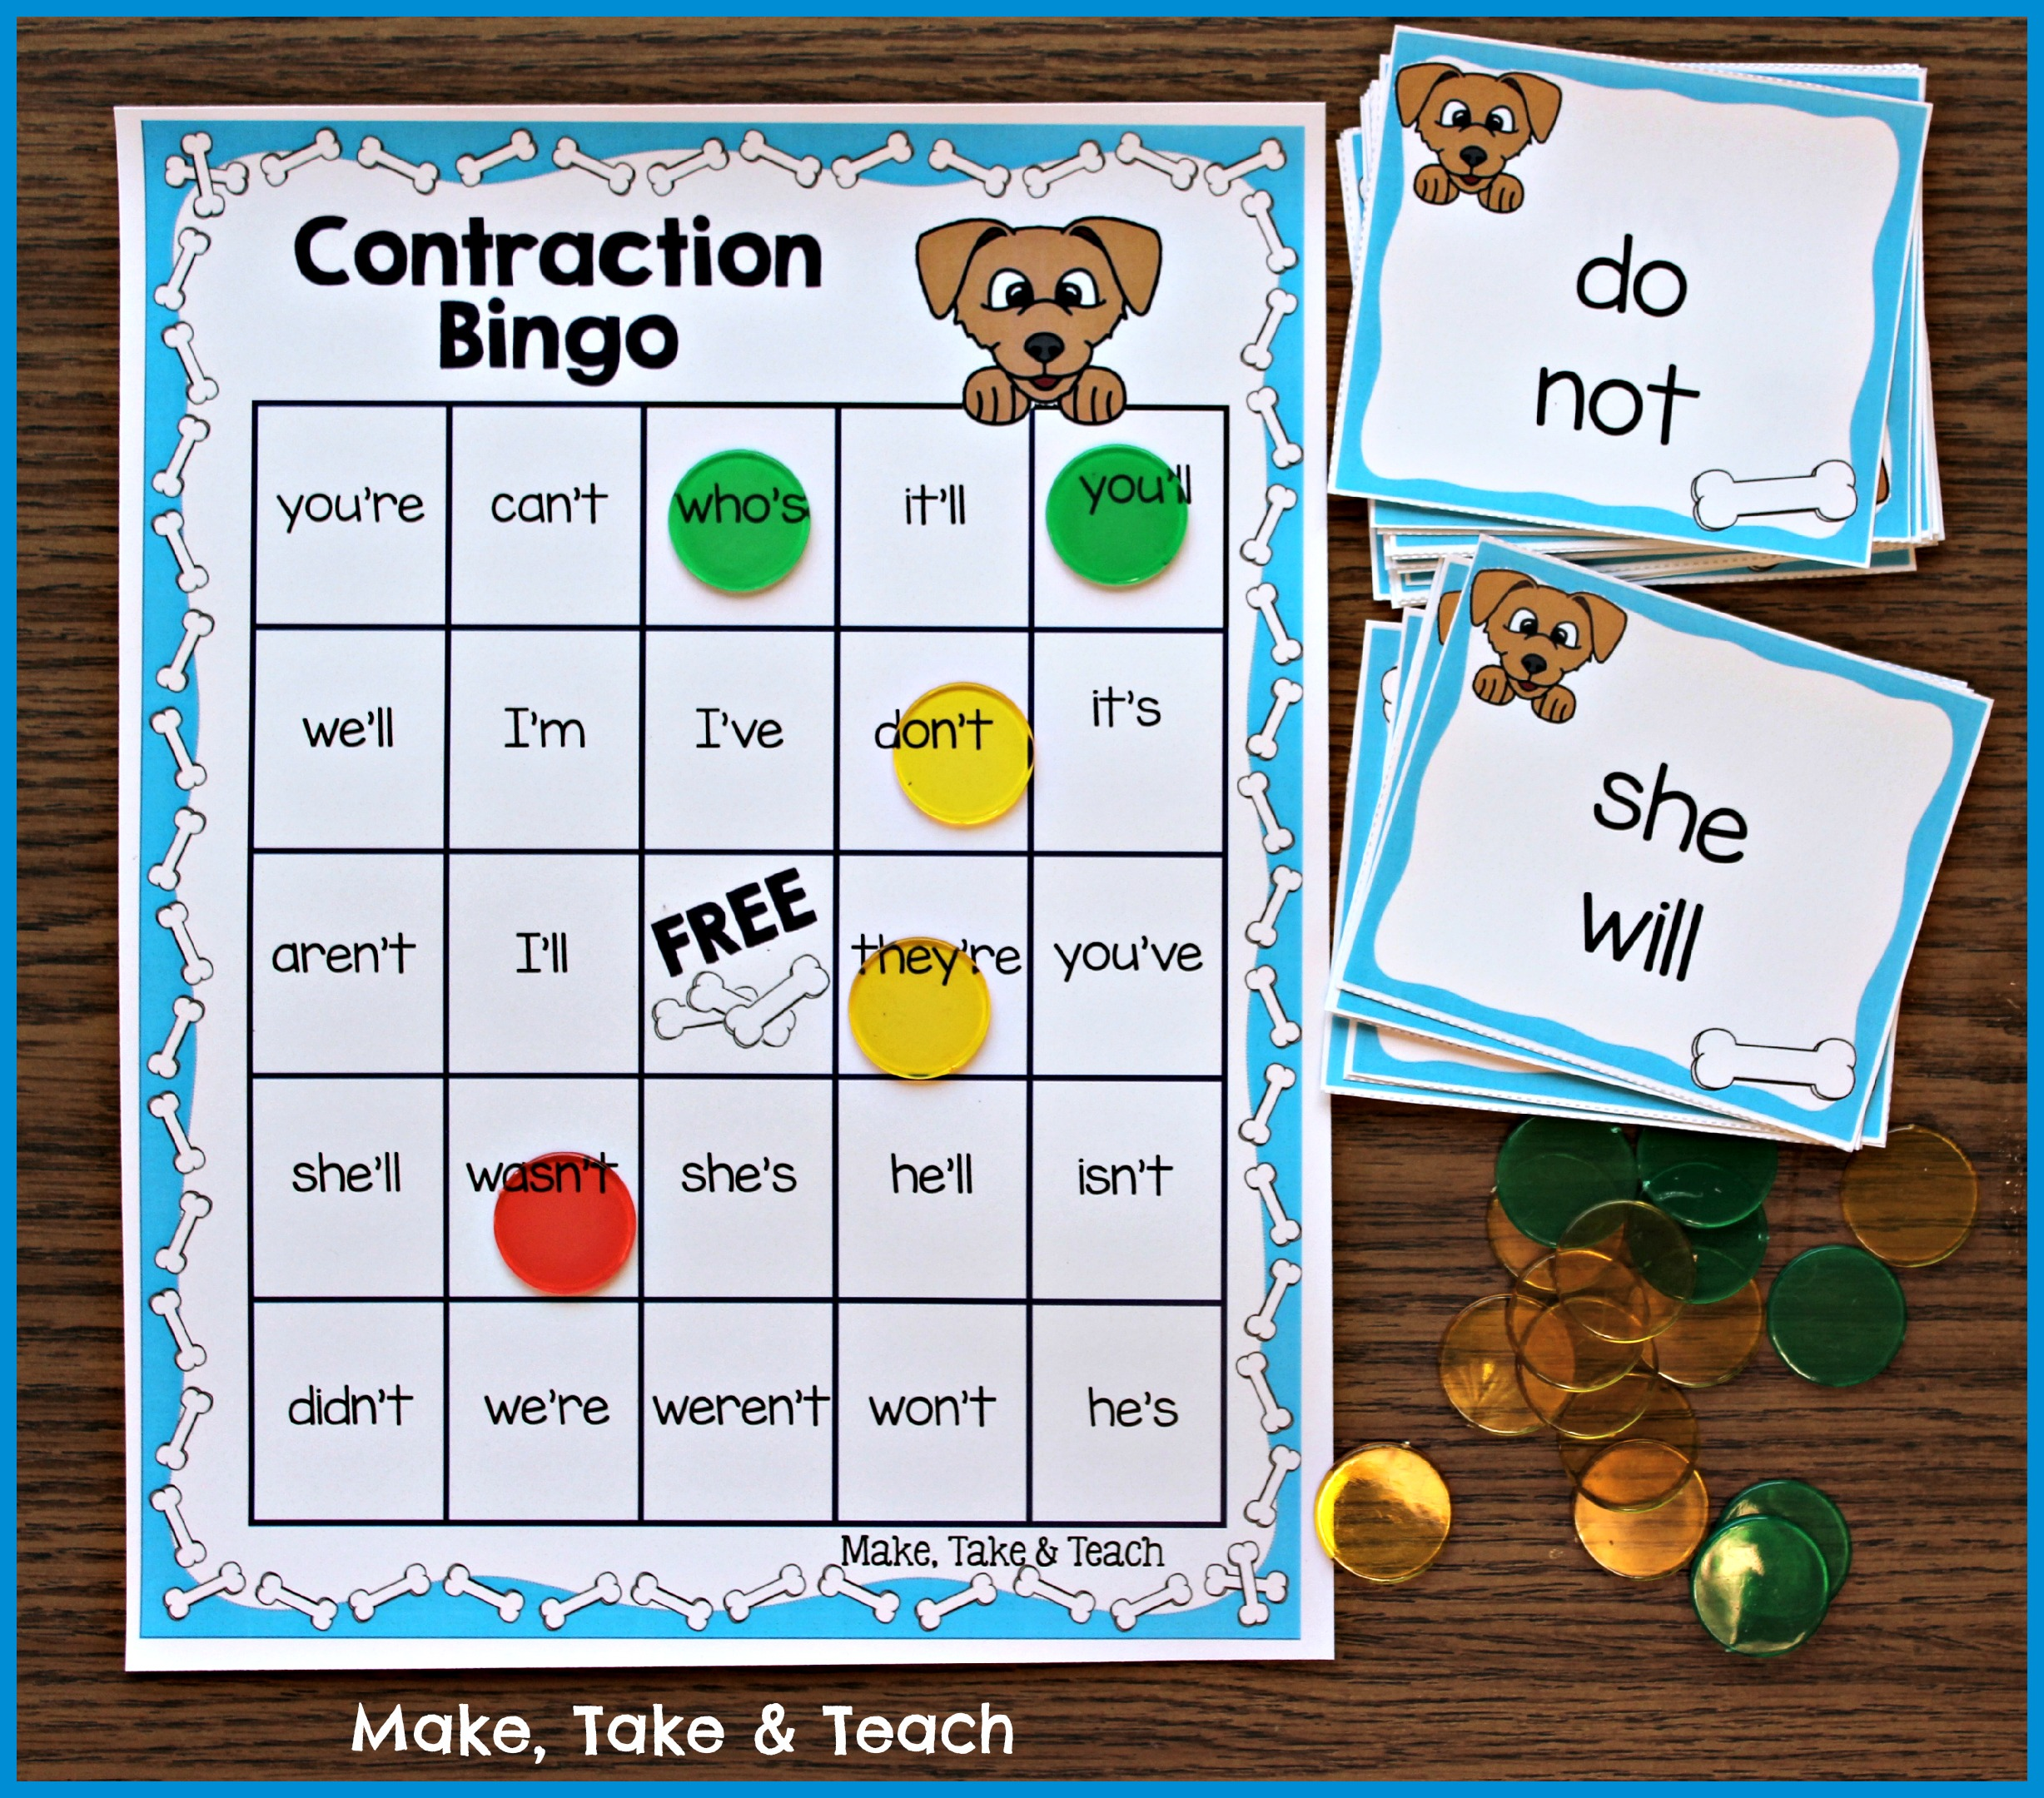 Fun Little Activity For Learning Contractions